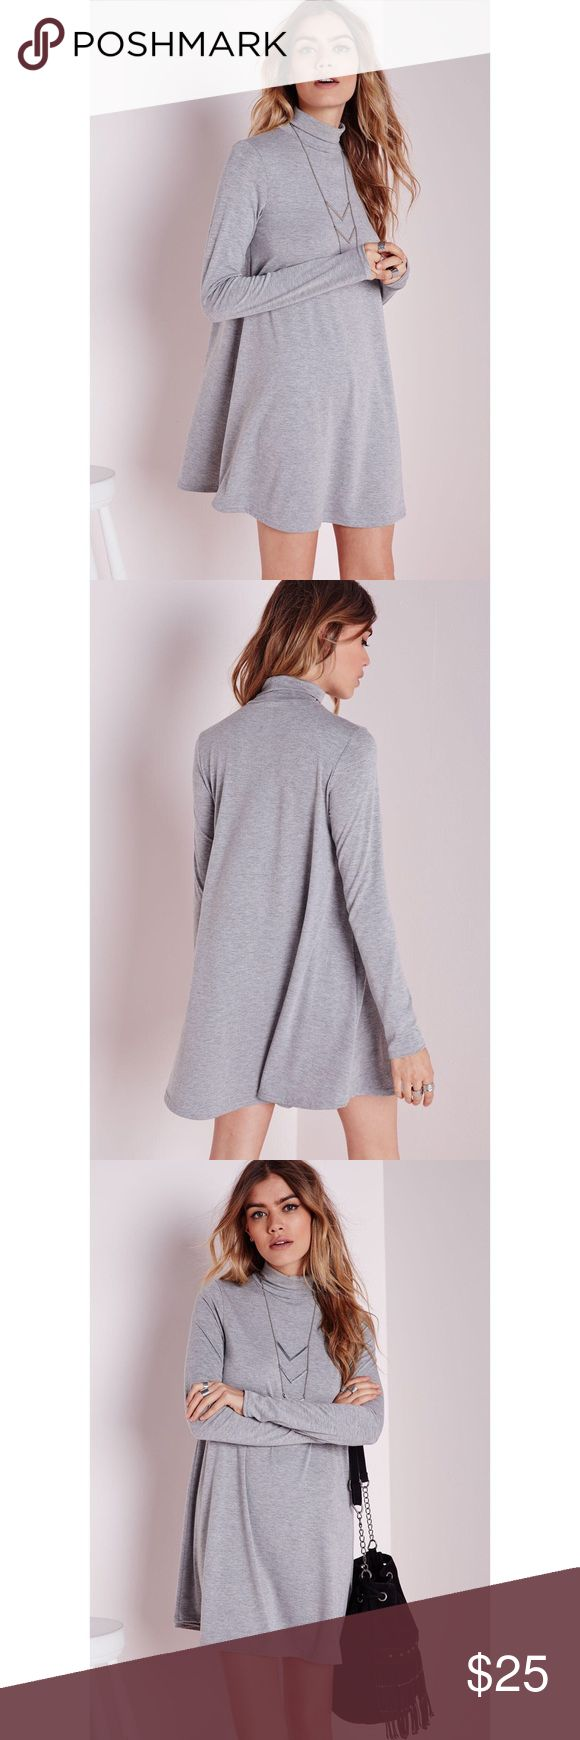 Roll neck long sleeve jersey swing dress ▫️Grey swing dress ▫️Luxe long sleeves ▫️Roll neck ▫️95% viscose 5% elastane  ▫️US size 4 ▫️Please refer to Missguided size chart: https://www.missguidedus.com/size_guide/ 📷: additional photos available upon request 💵: reasonable offers will be considered Missguided Dresses